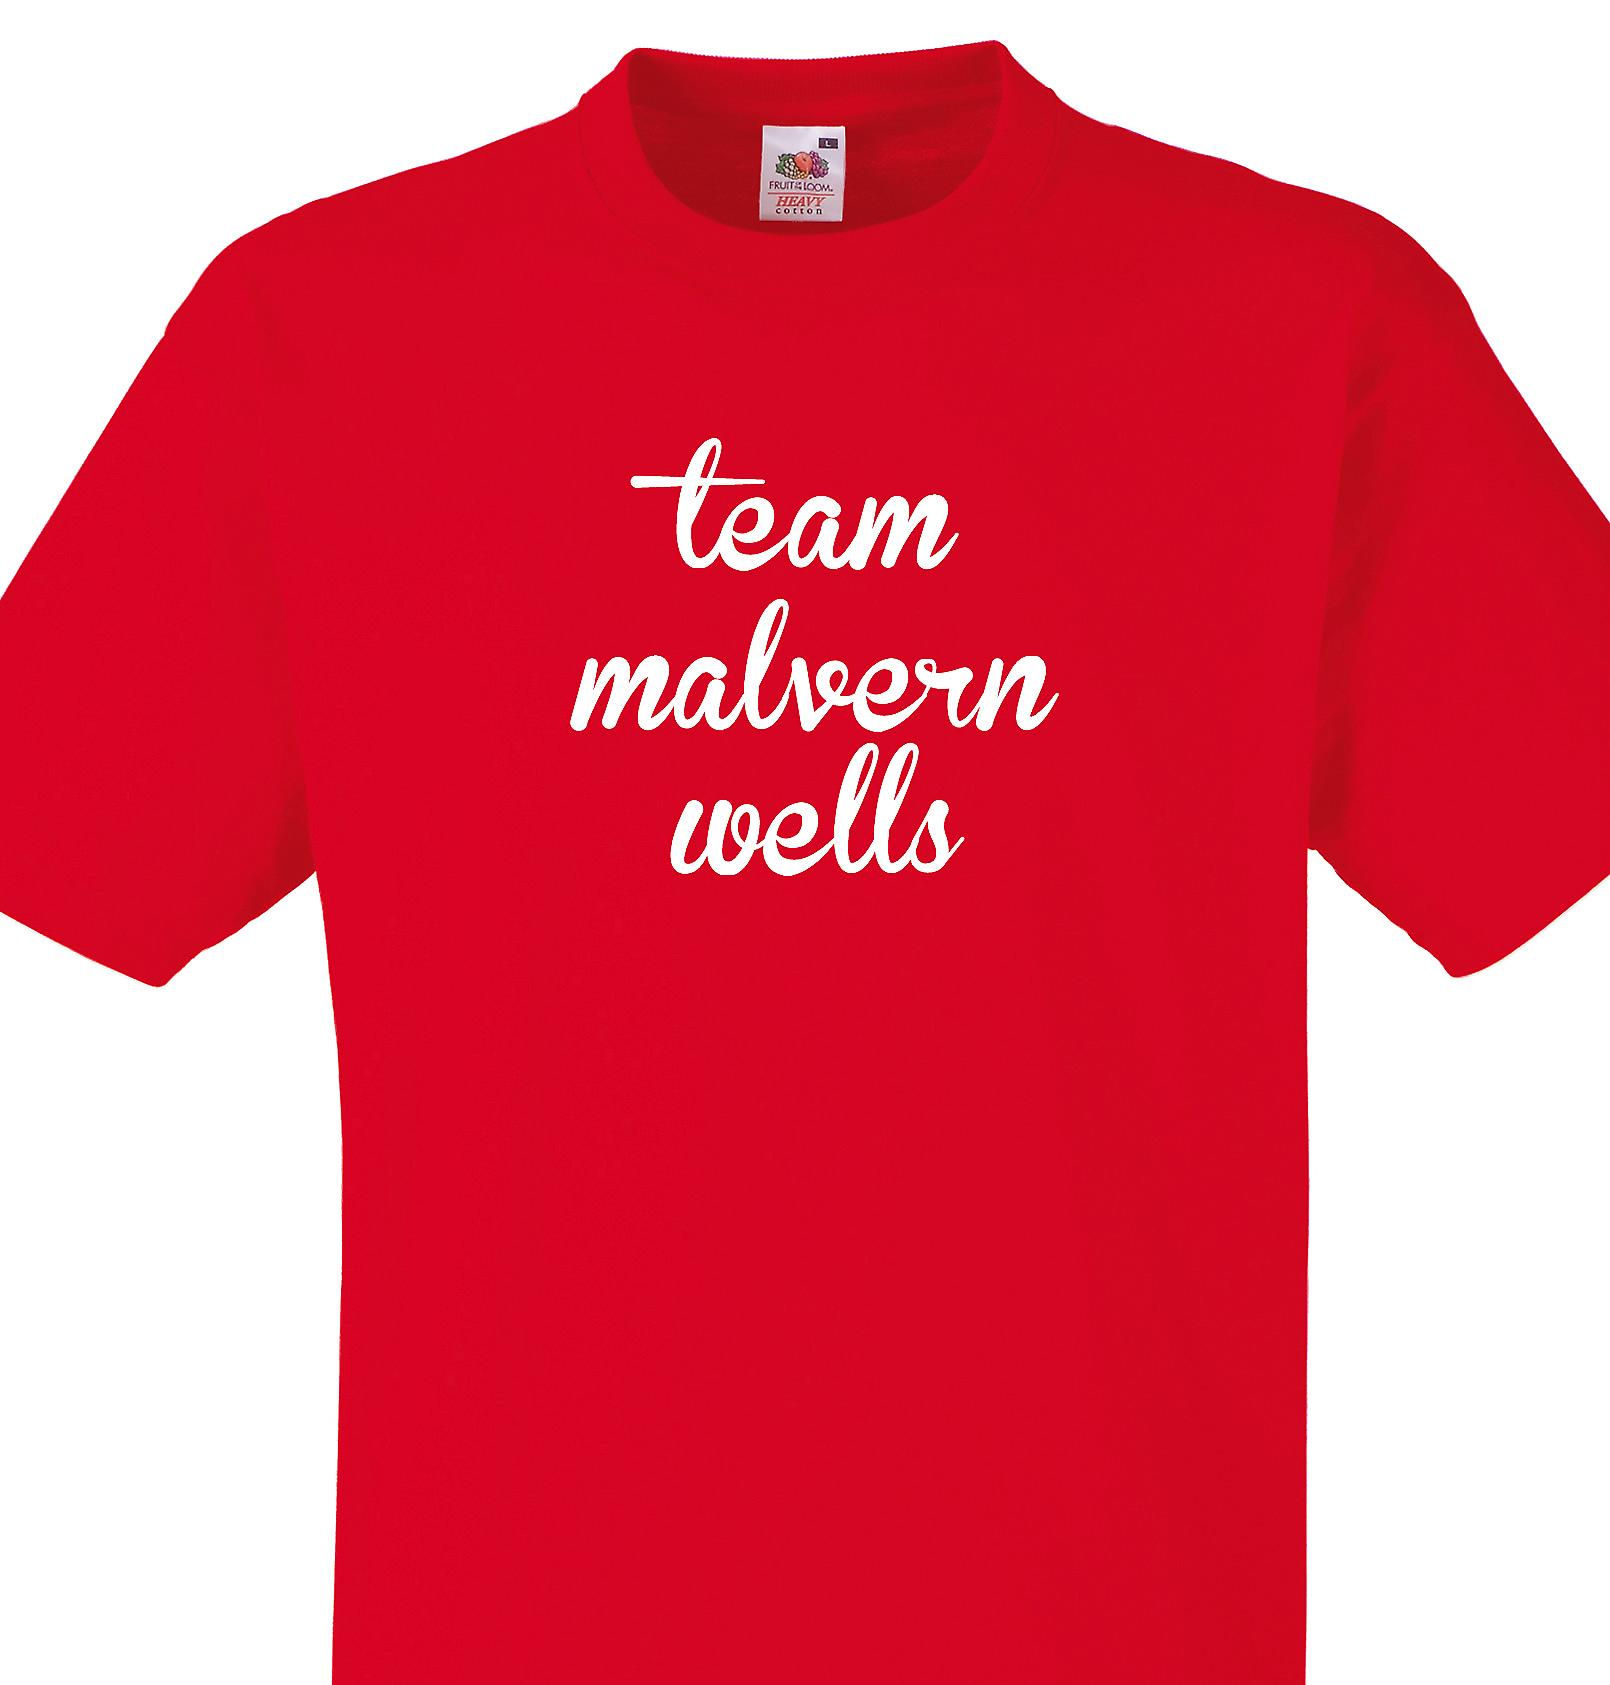 Team Malvern wells Red T shirt